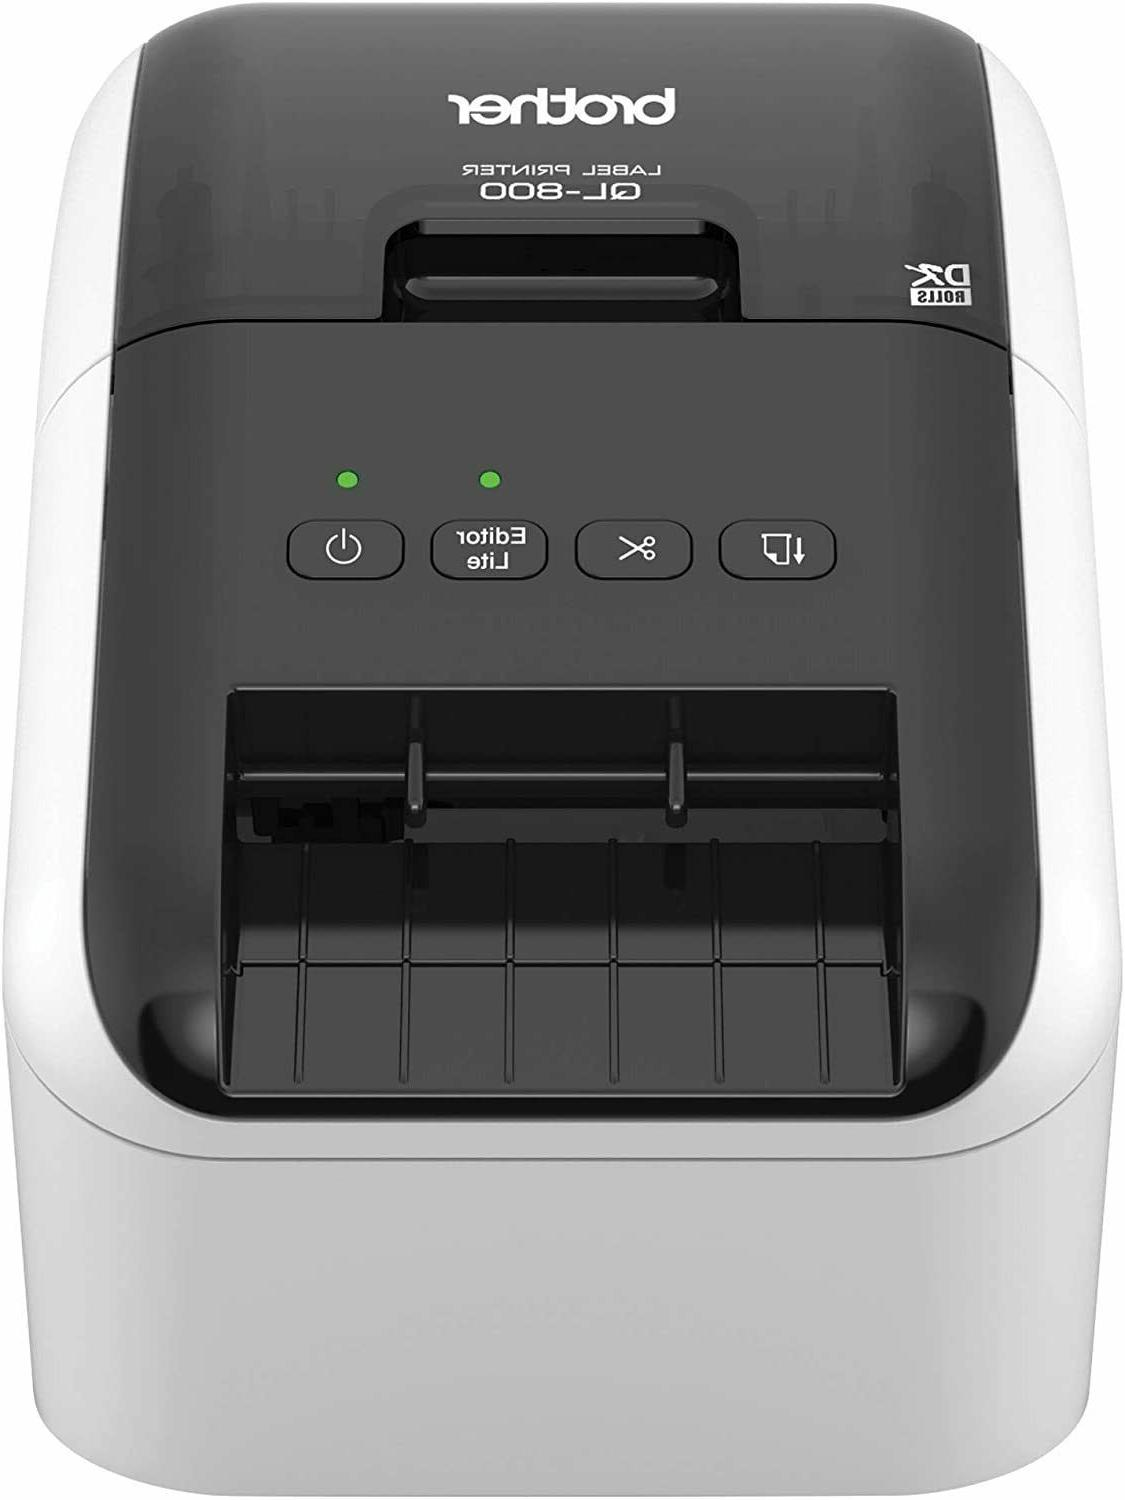 brand new Brother QL-800 High-Speed Professional Label Print